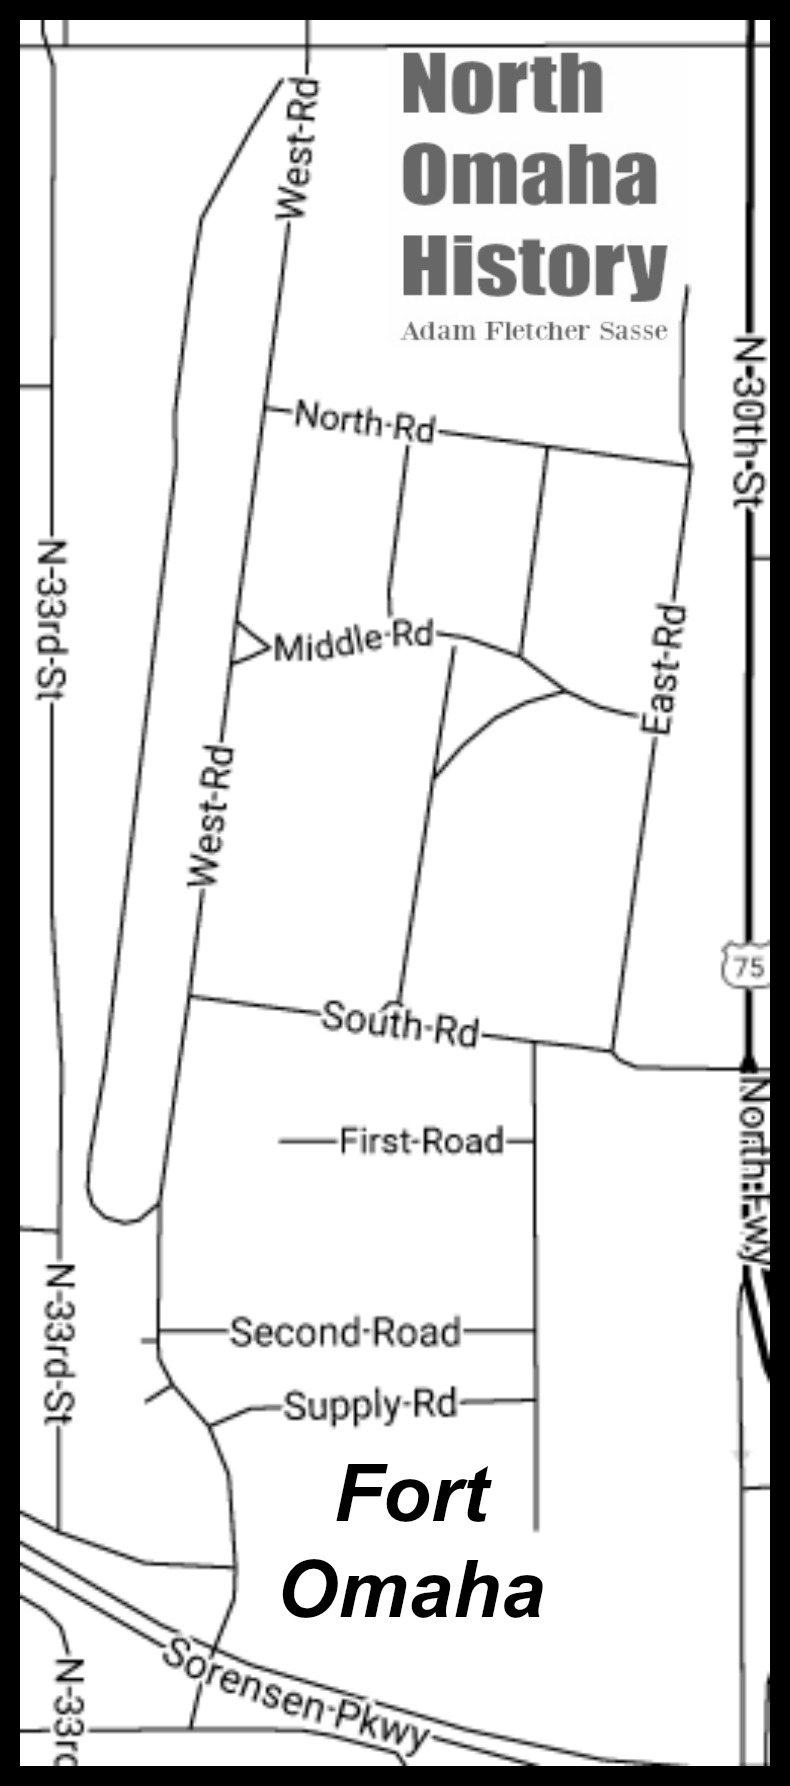 fort omaha campus map with Historic Neighborhoods In North Omaha on Q163749 together with WTRACK 0226154148 in addition Maps Directions together with McGraw New York in addition Sempronius New York.